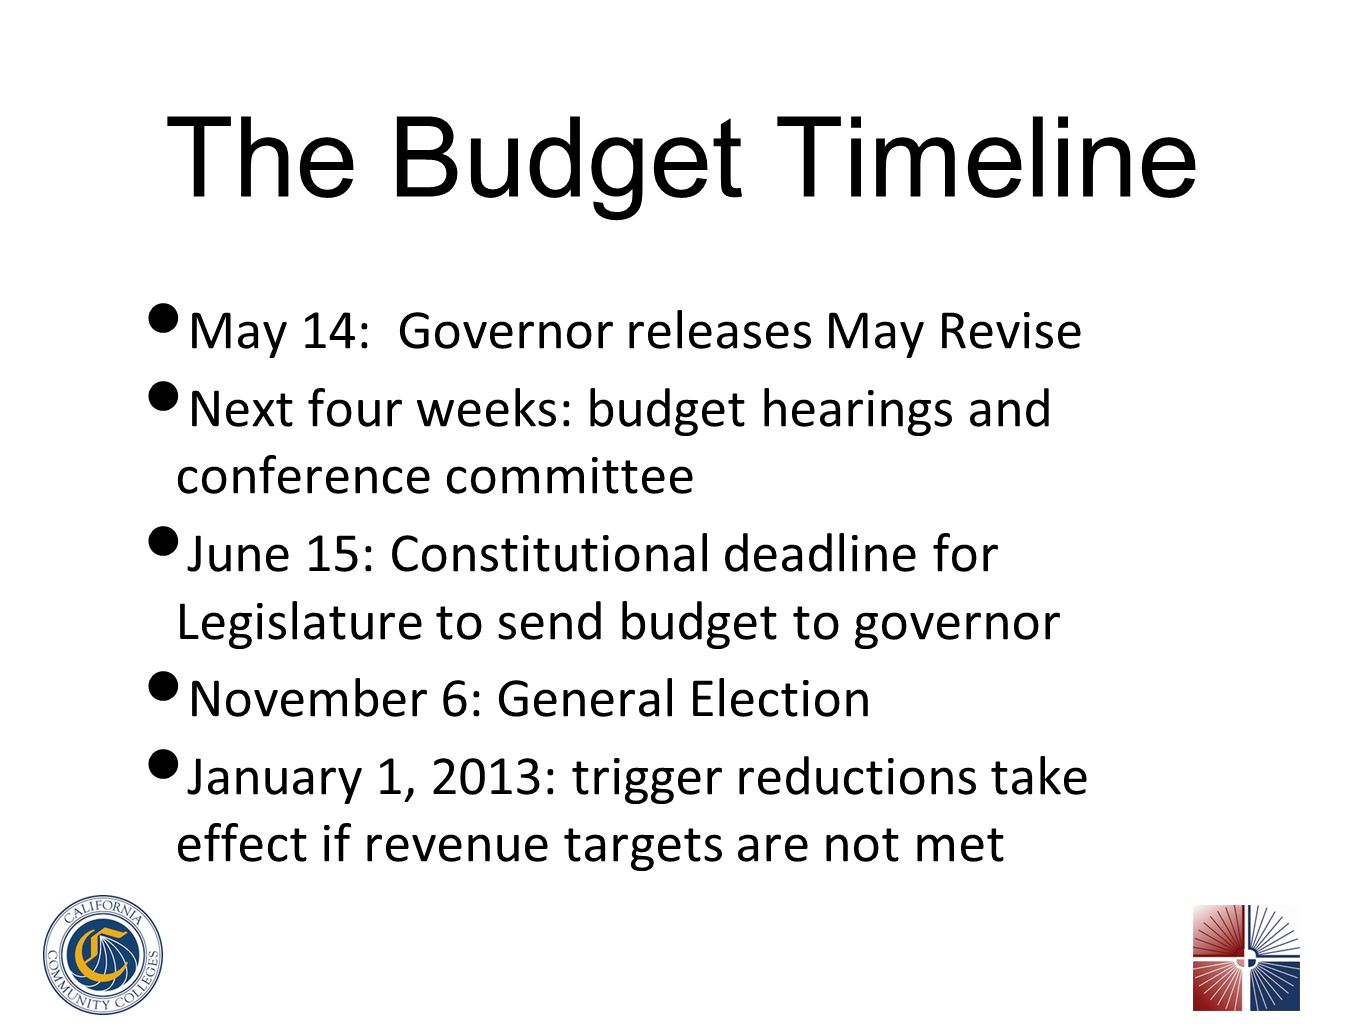 The Budget Timeline May 14: Governor releases May Revise Next four weeks: budget hearings and conference committee June 15: Constitutional deadline for Legislature to send budget to governor November 6: General Election January 1, 2013: trigger reductions take effect if revenue targets are not met